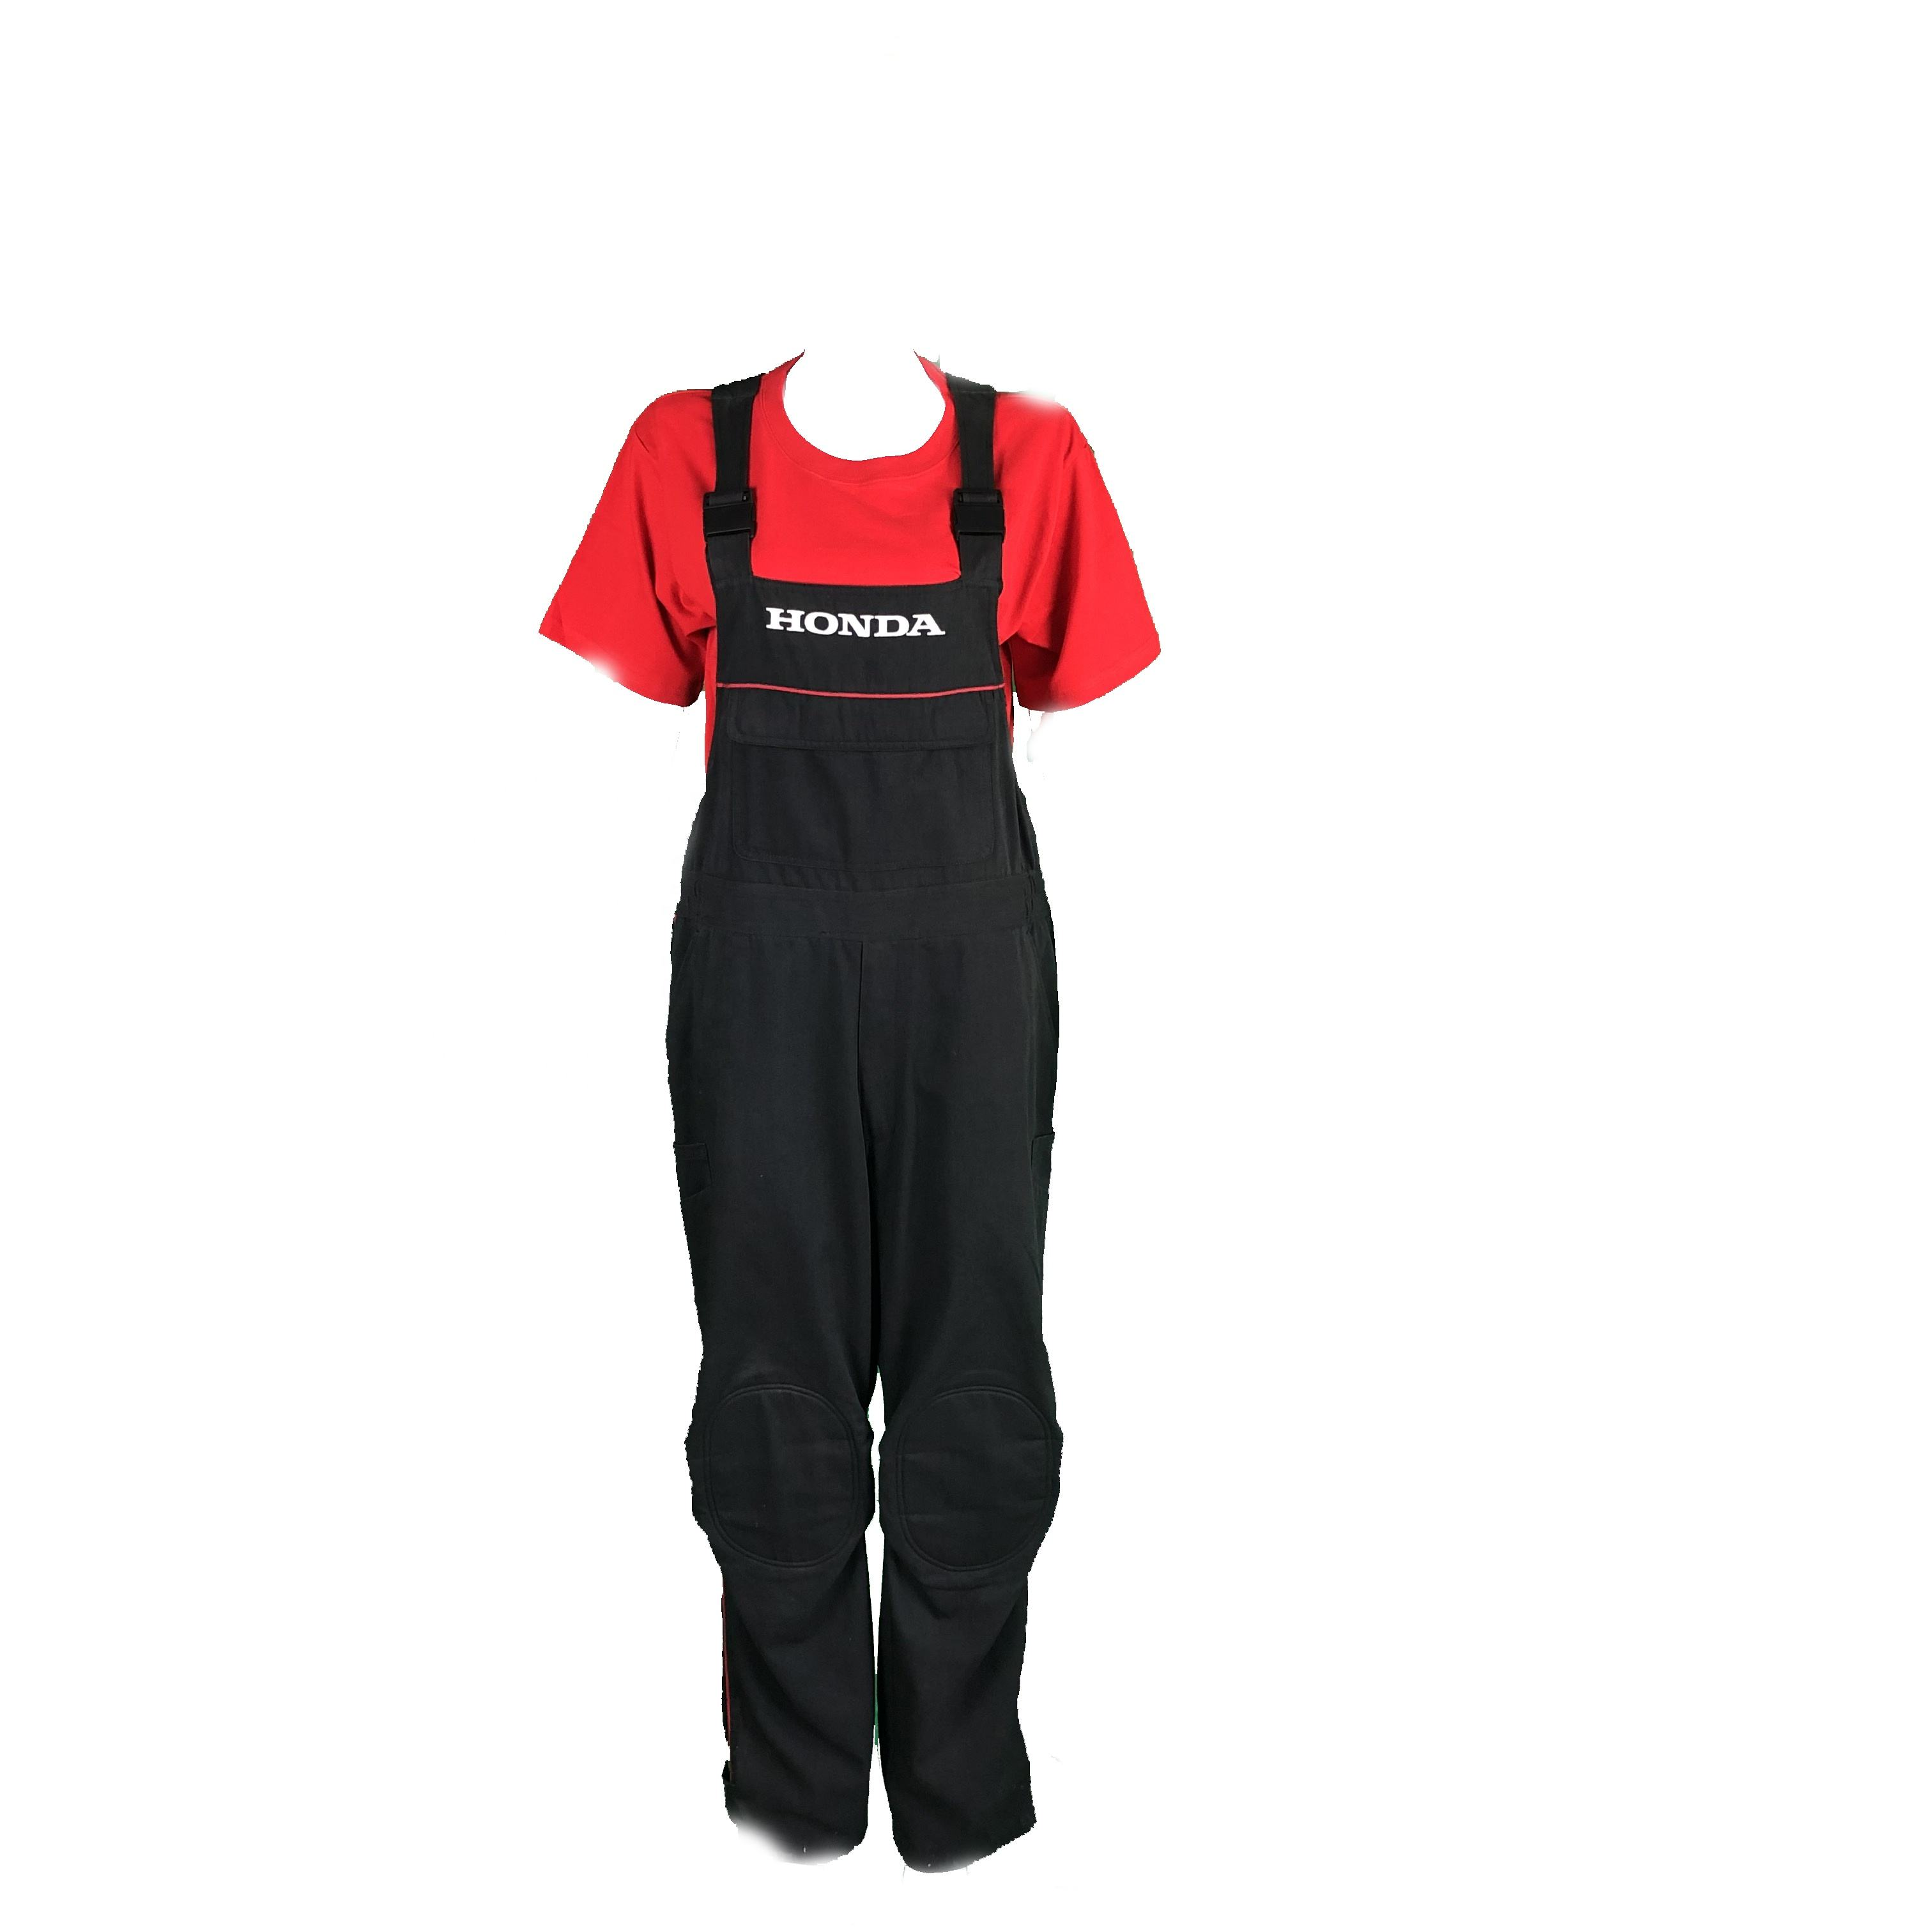 bib pants painter overalls for man safety bib pants